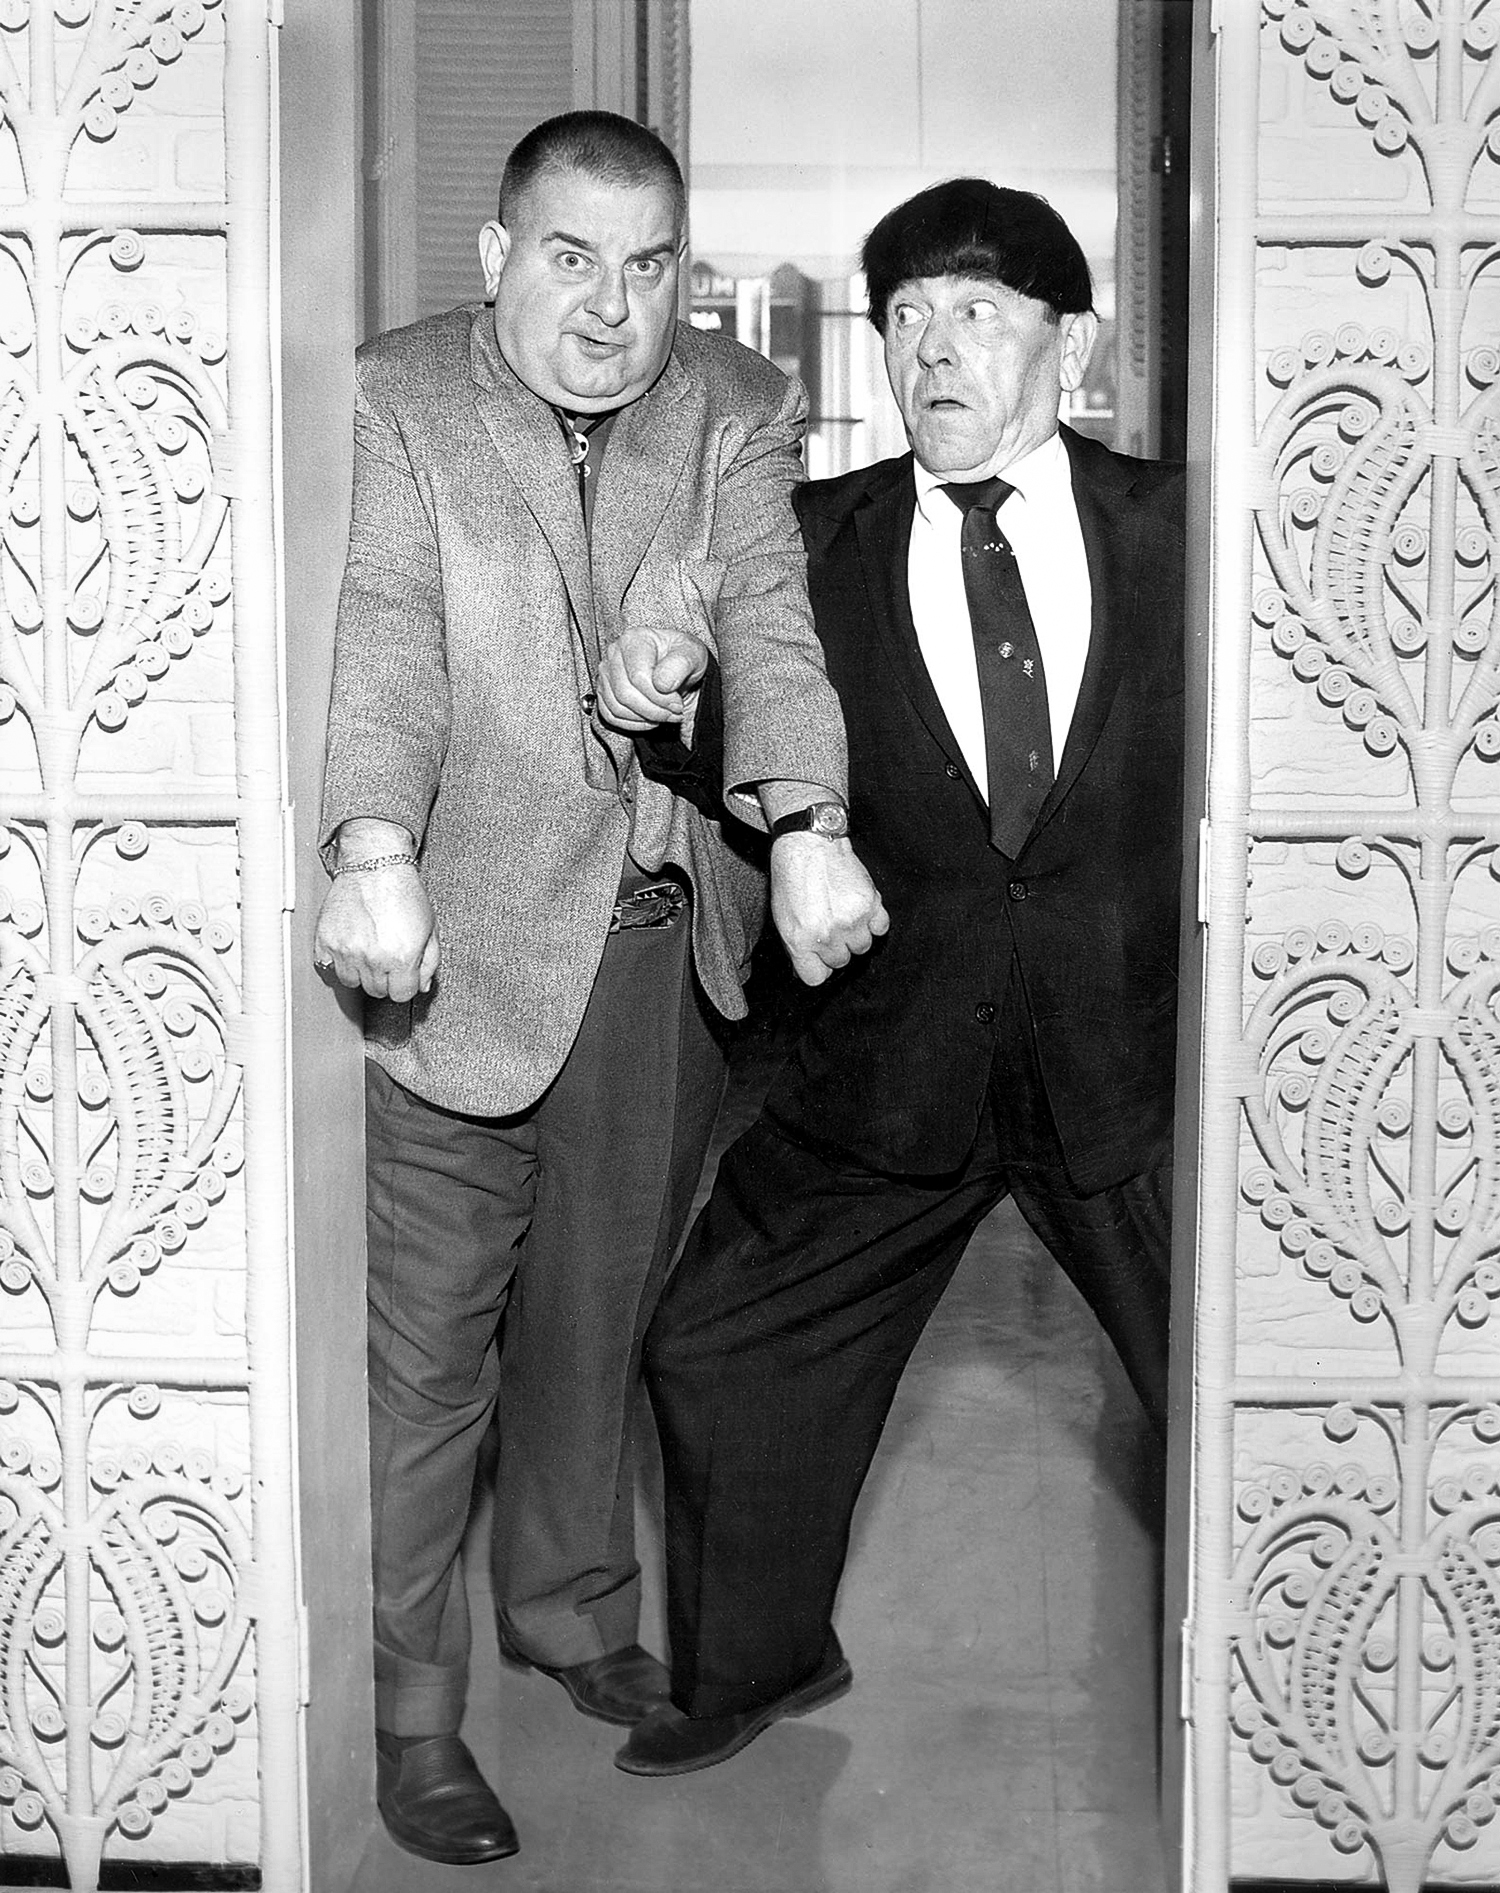 Two of the Three Stooges arrived a day early for their show at the Illinois State Fair in 1960. Curly Joe DeRita, left, and Moe Howard clown around in the Leland Hotel lobby for a Hagen's camera. The third Stooge, Larry Fine, arrived the next day. [Bill Hagen/The State Journal-Register]